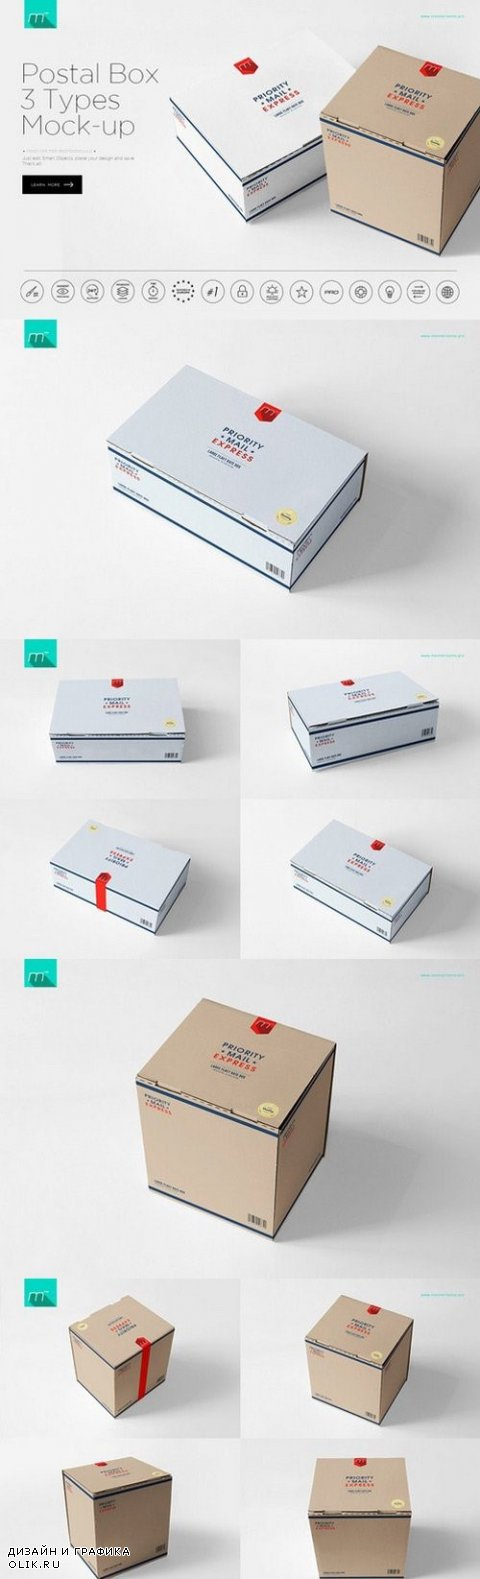 Postal Mailing Box 3 Types Mock-up - 885466